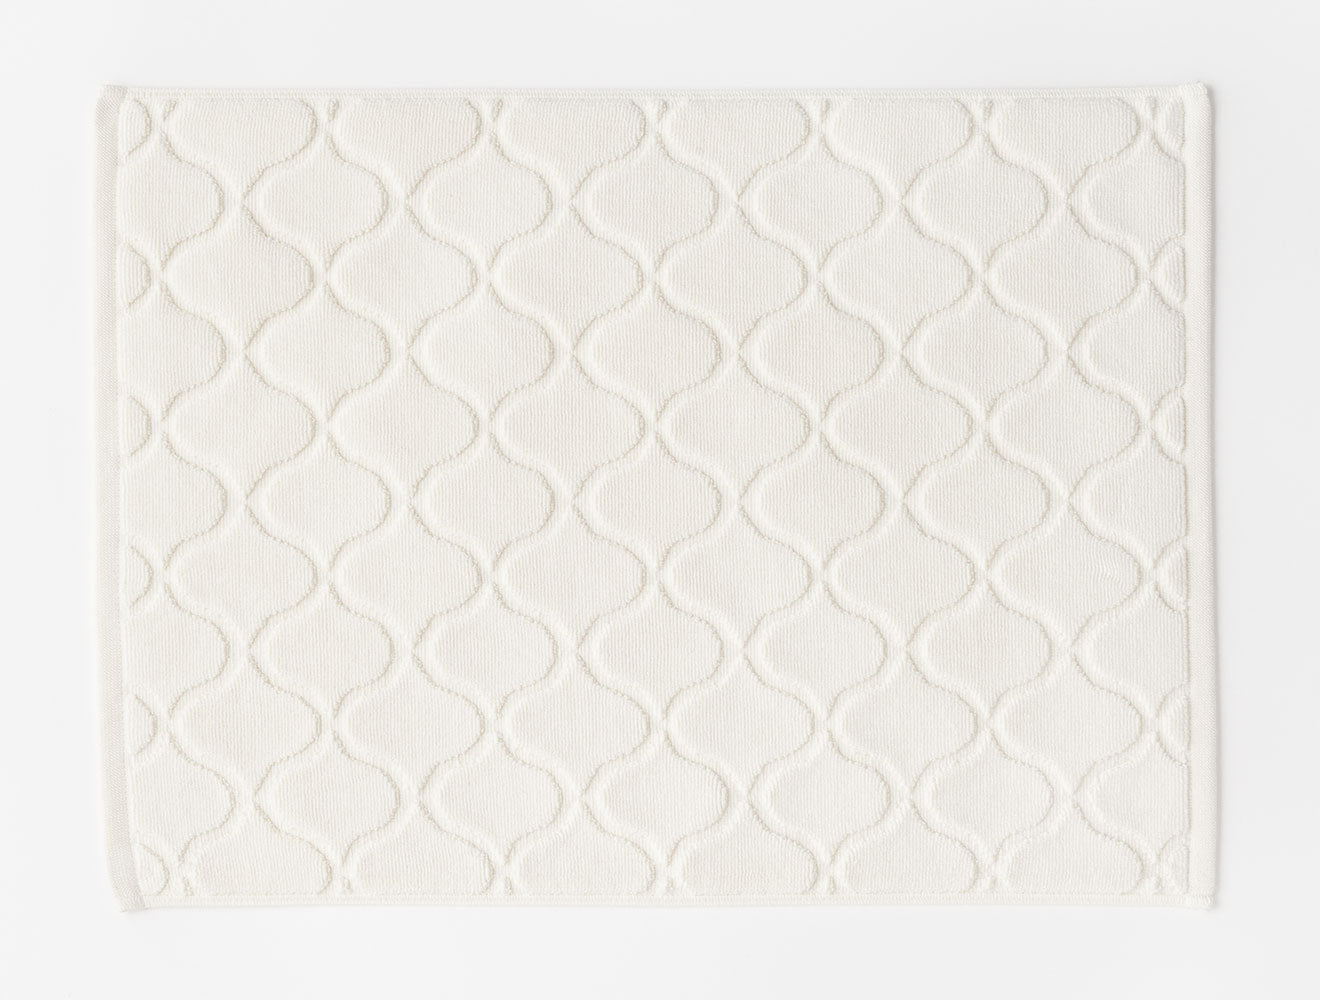 BATH MAT TILE MAT / WHITE